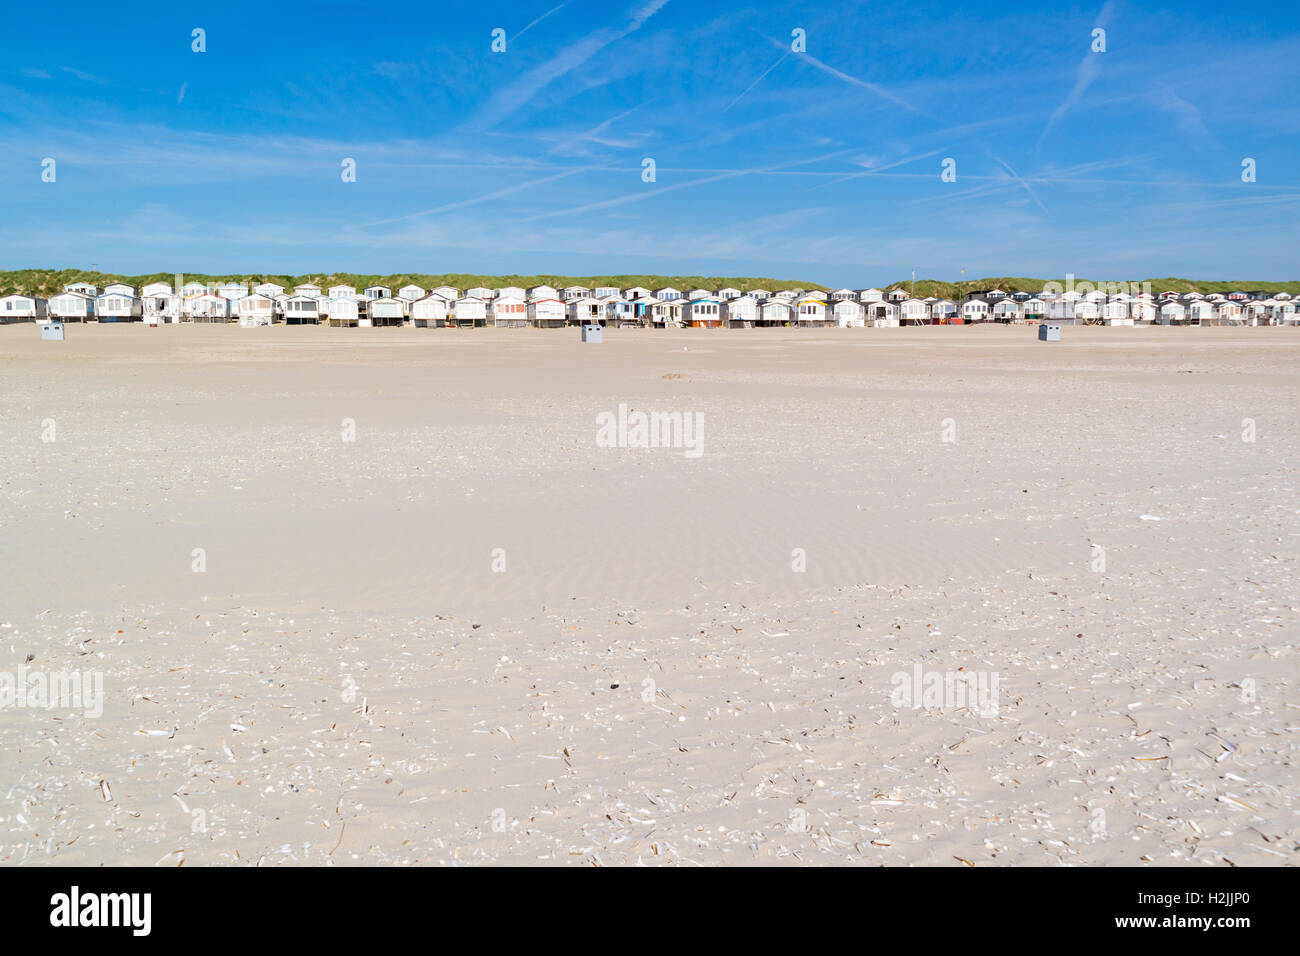 Row of beach houses or huts on IJmuiden beach at North Sea coast in Netherlands - Stock Image